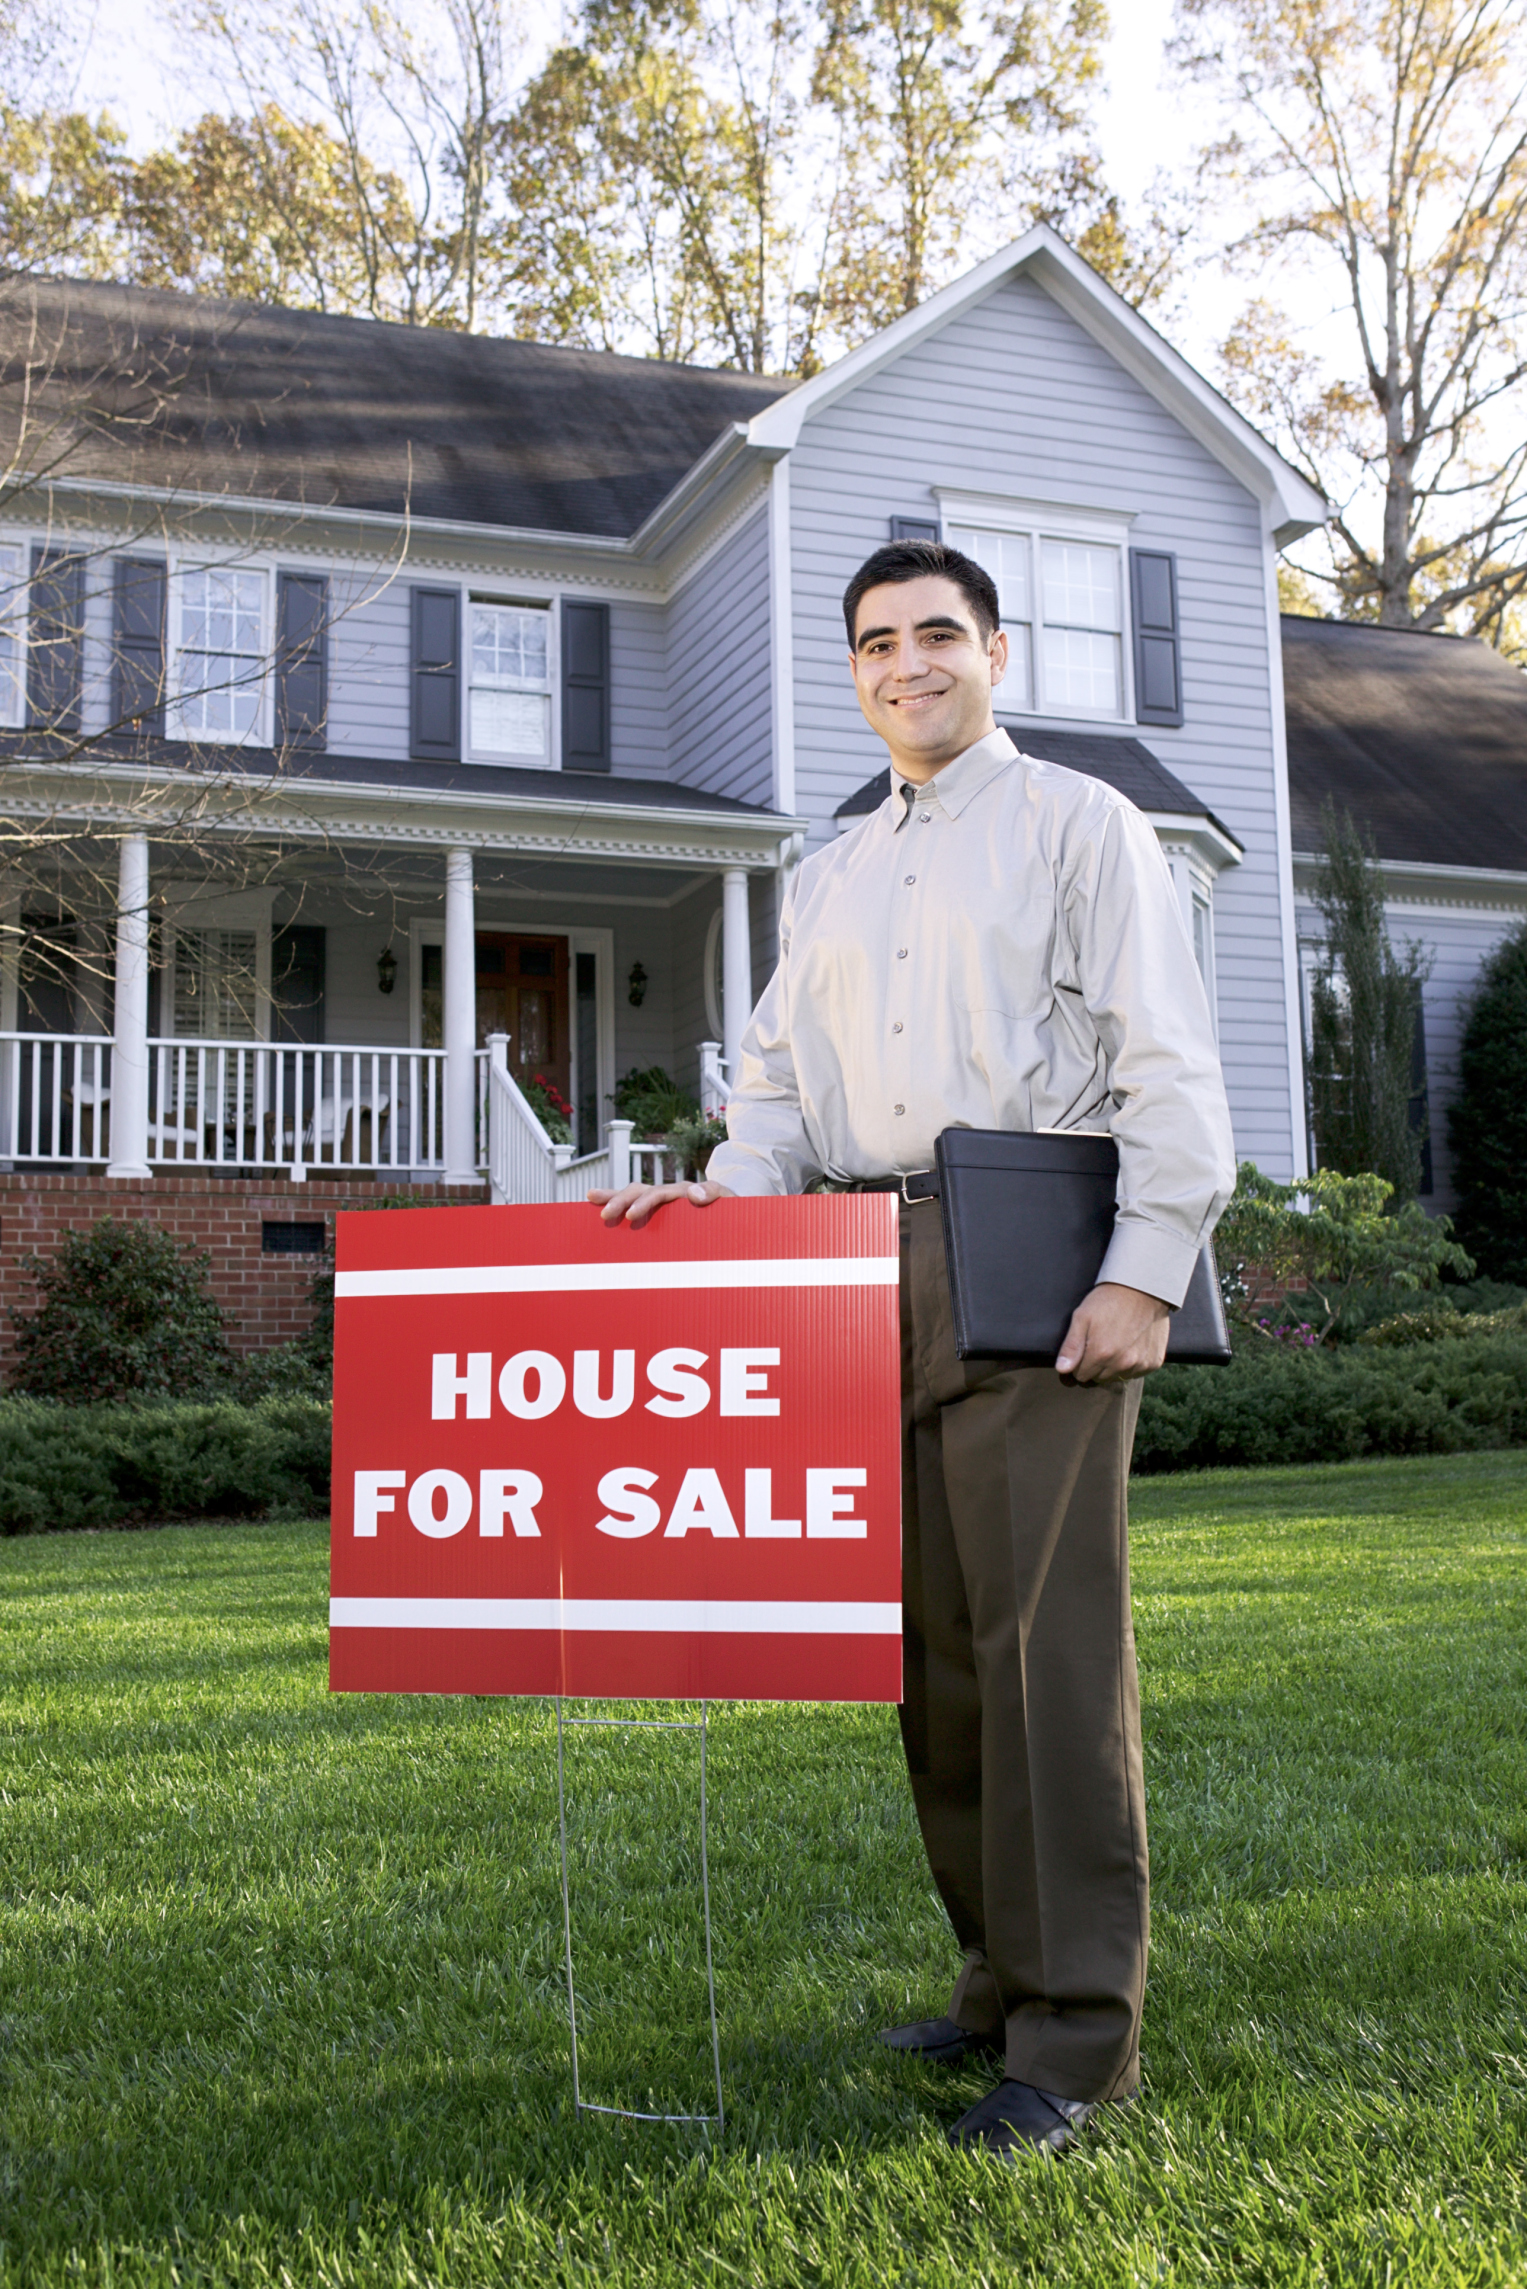 appraised tax value vs. asking price | home guides | sf gate